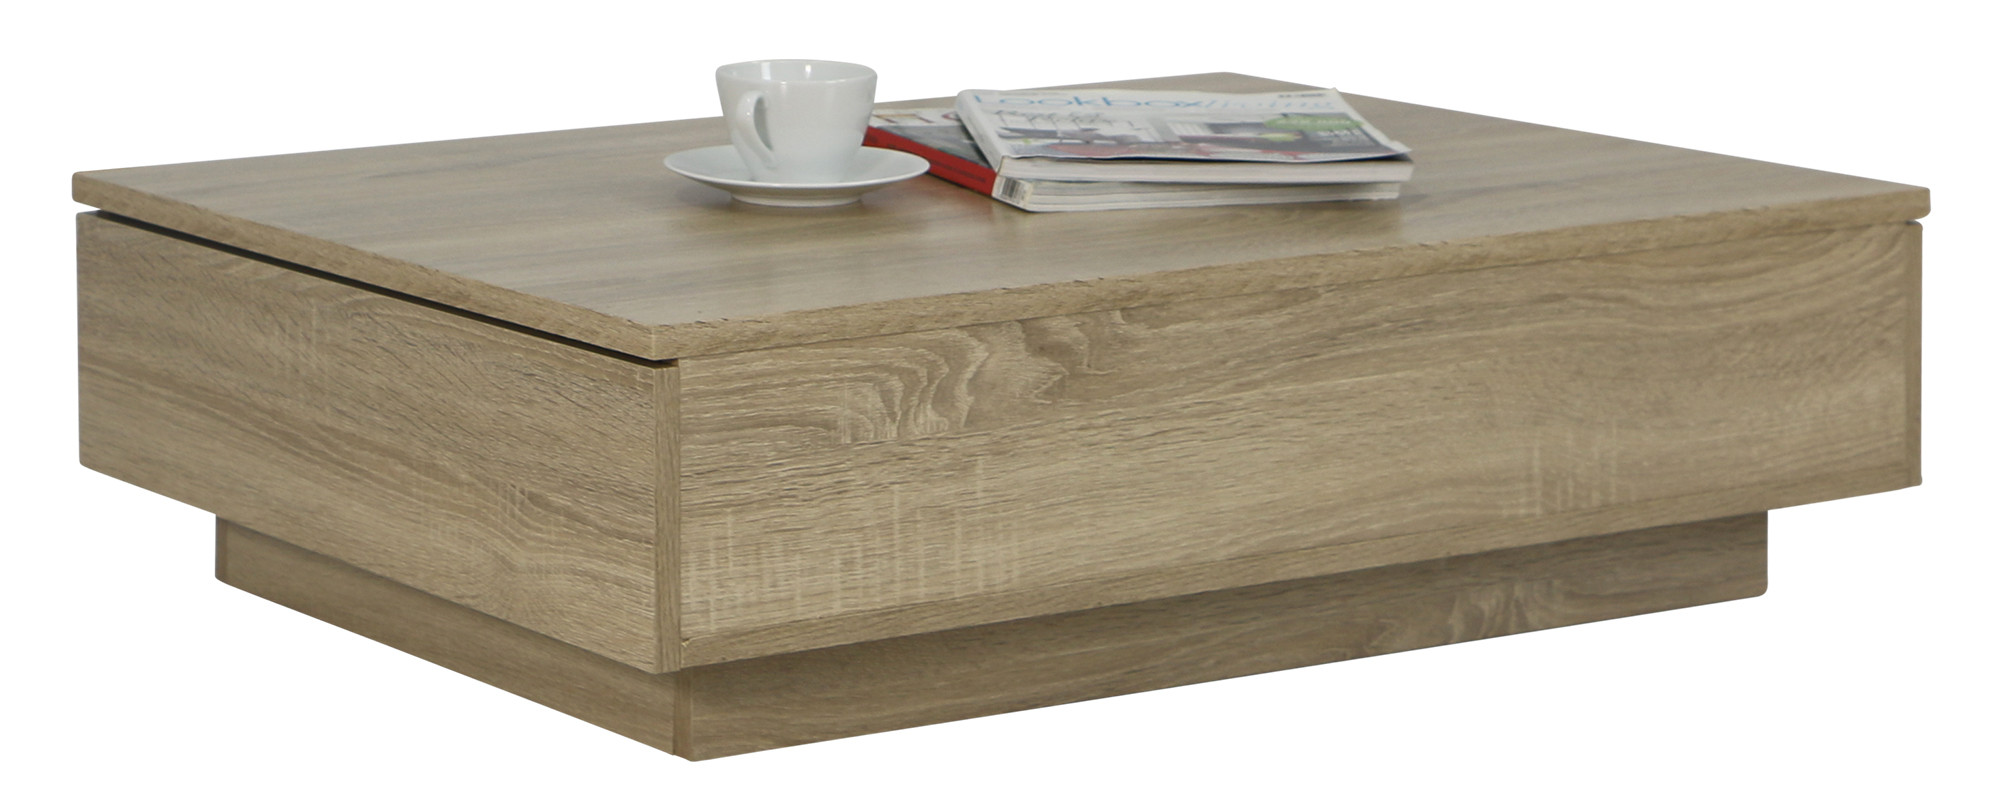 Avellino Low Coffee Table in Sonoma Oak - Coffee Tables - Living ...